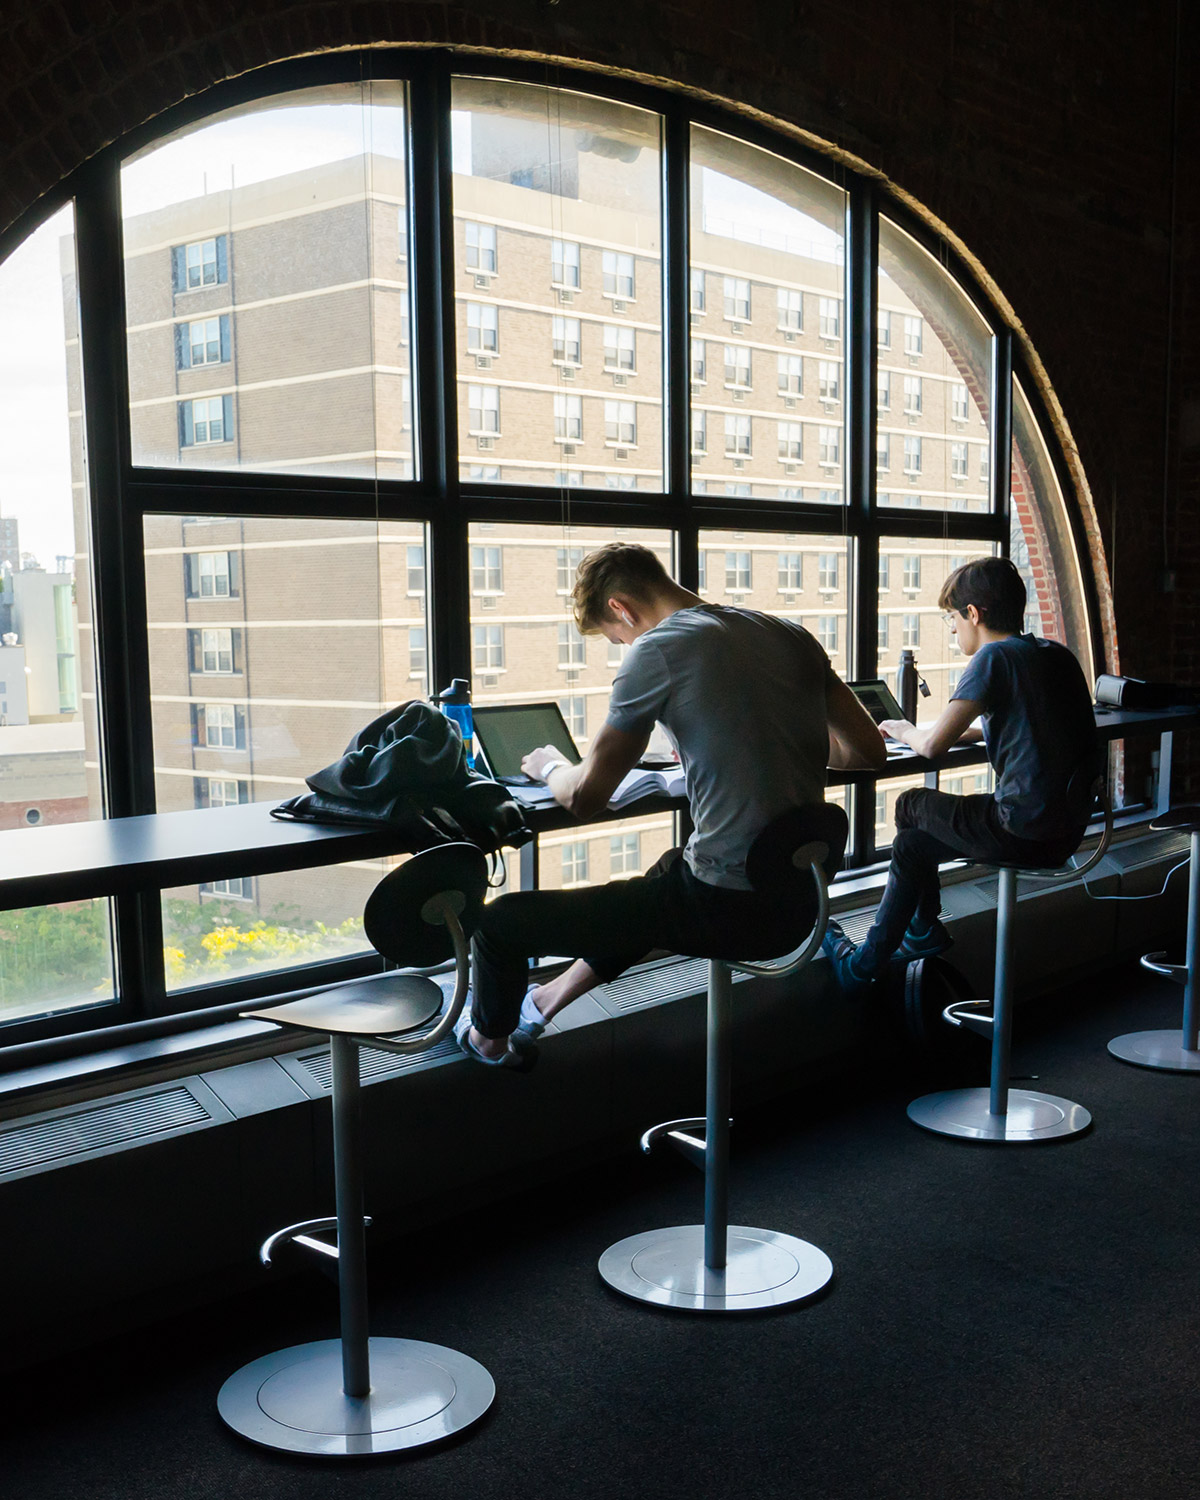 Students studying at window in common area